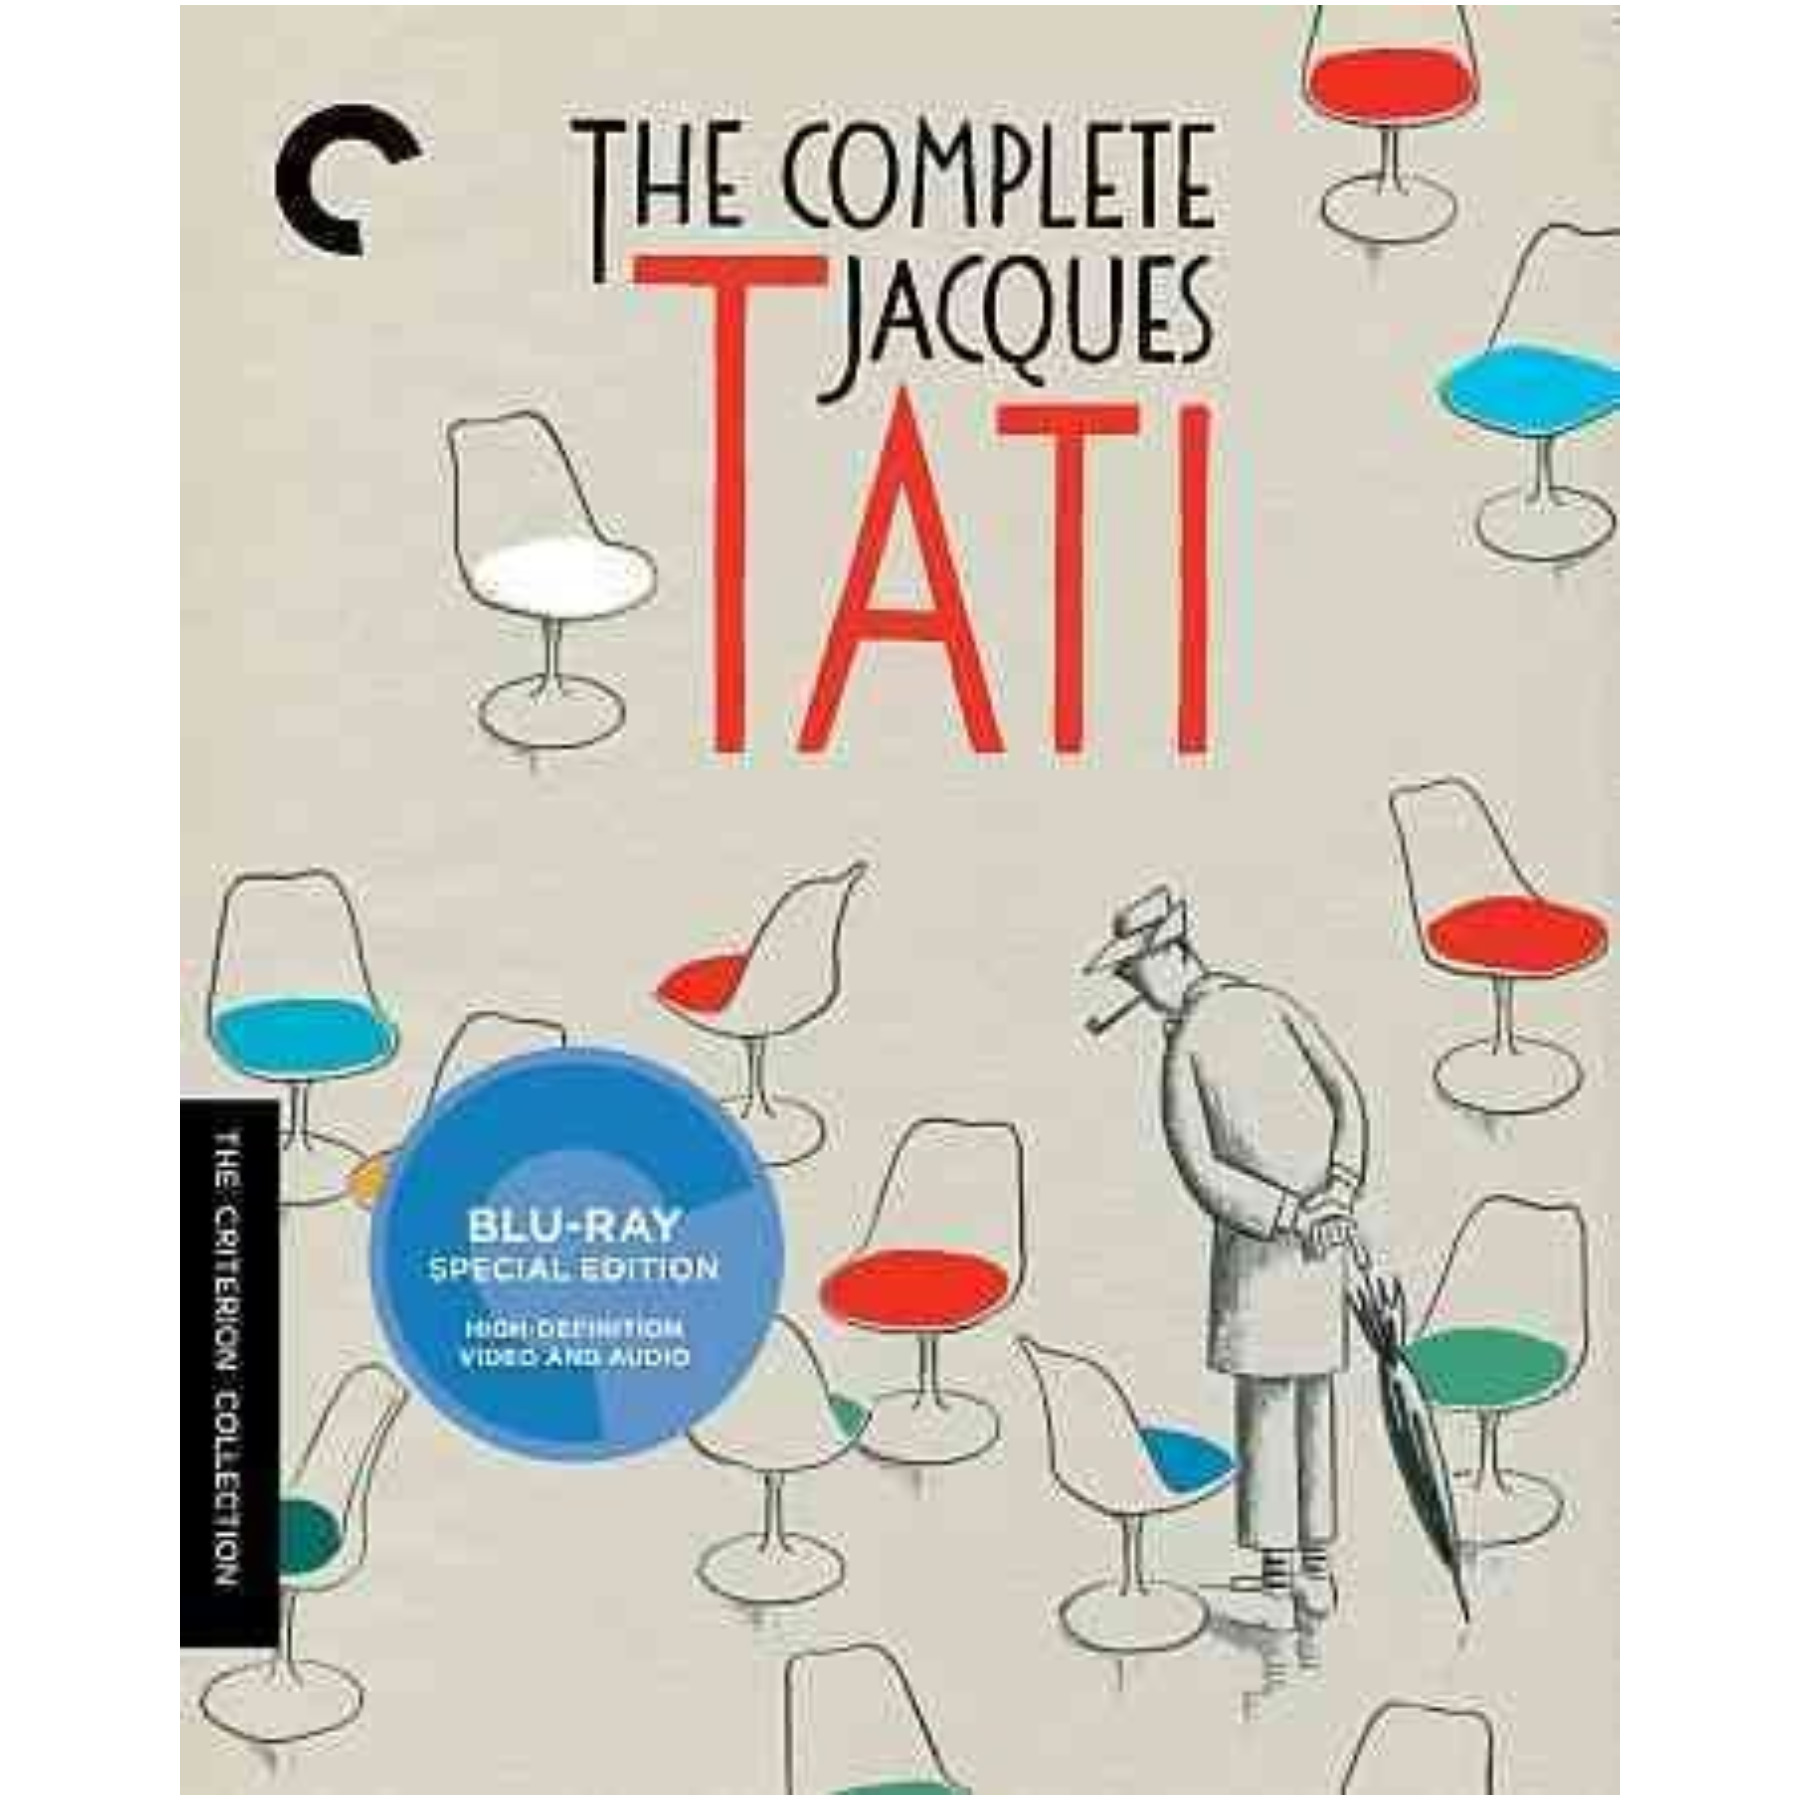 Complete Jacques Tati Blu-Ray/B&With Color/French/Eng Sub/7 Disc/1949-1974 715515128315